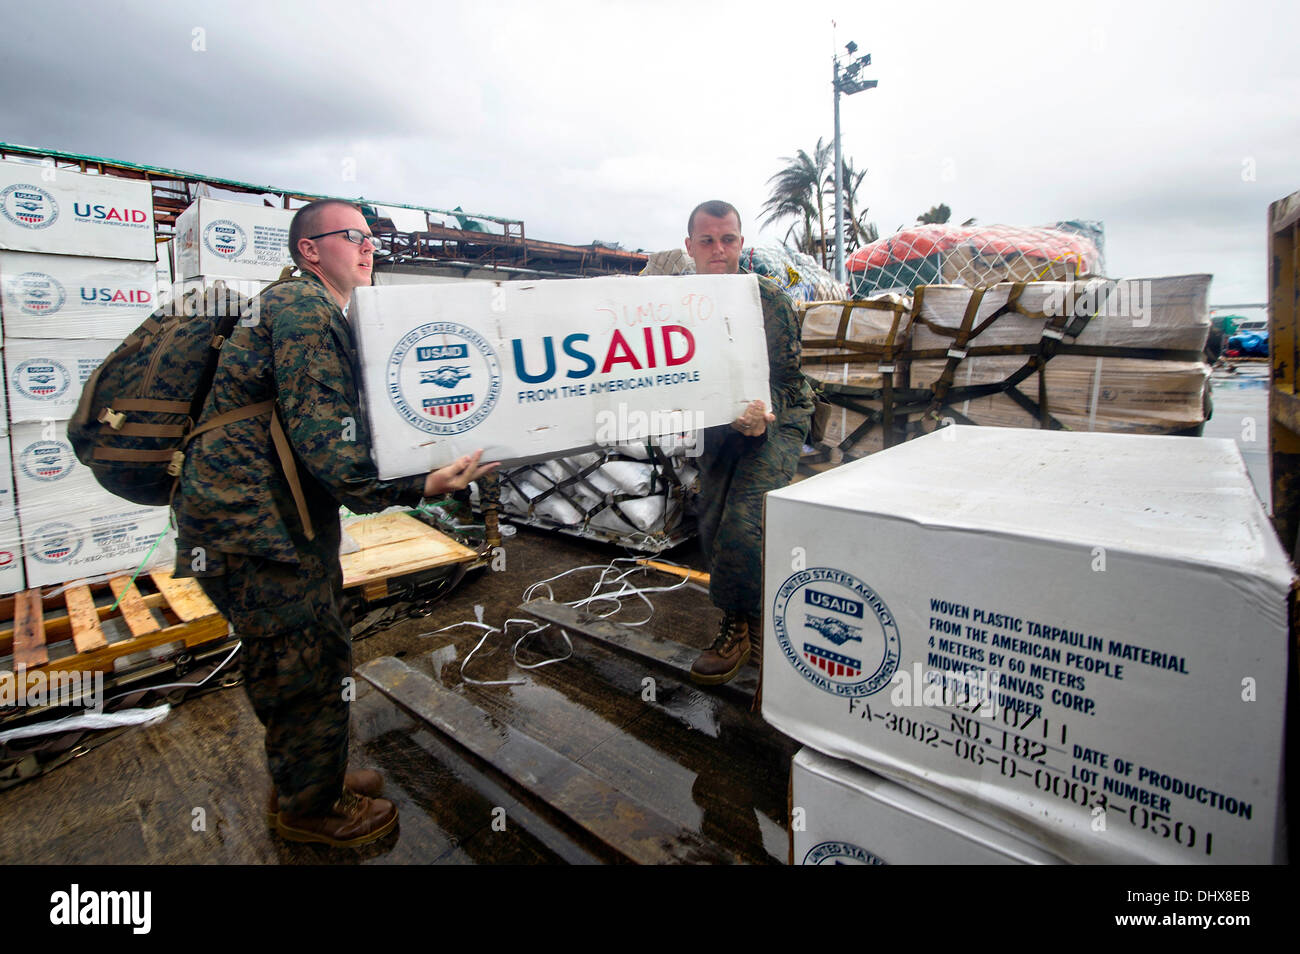 US Marines load emergency supplies onto an MV-22 Osprey aircraft in support of Typhoon Haiyan relief efforts November 14, 2013 in Tacloban, Philippines. - Stock Image